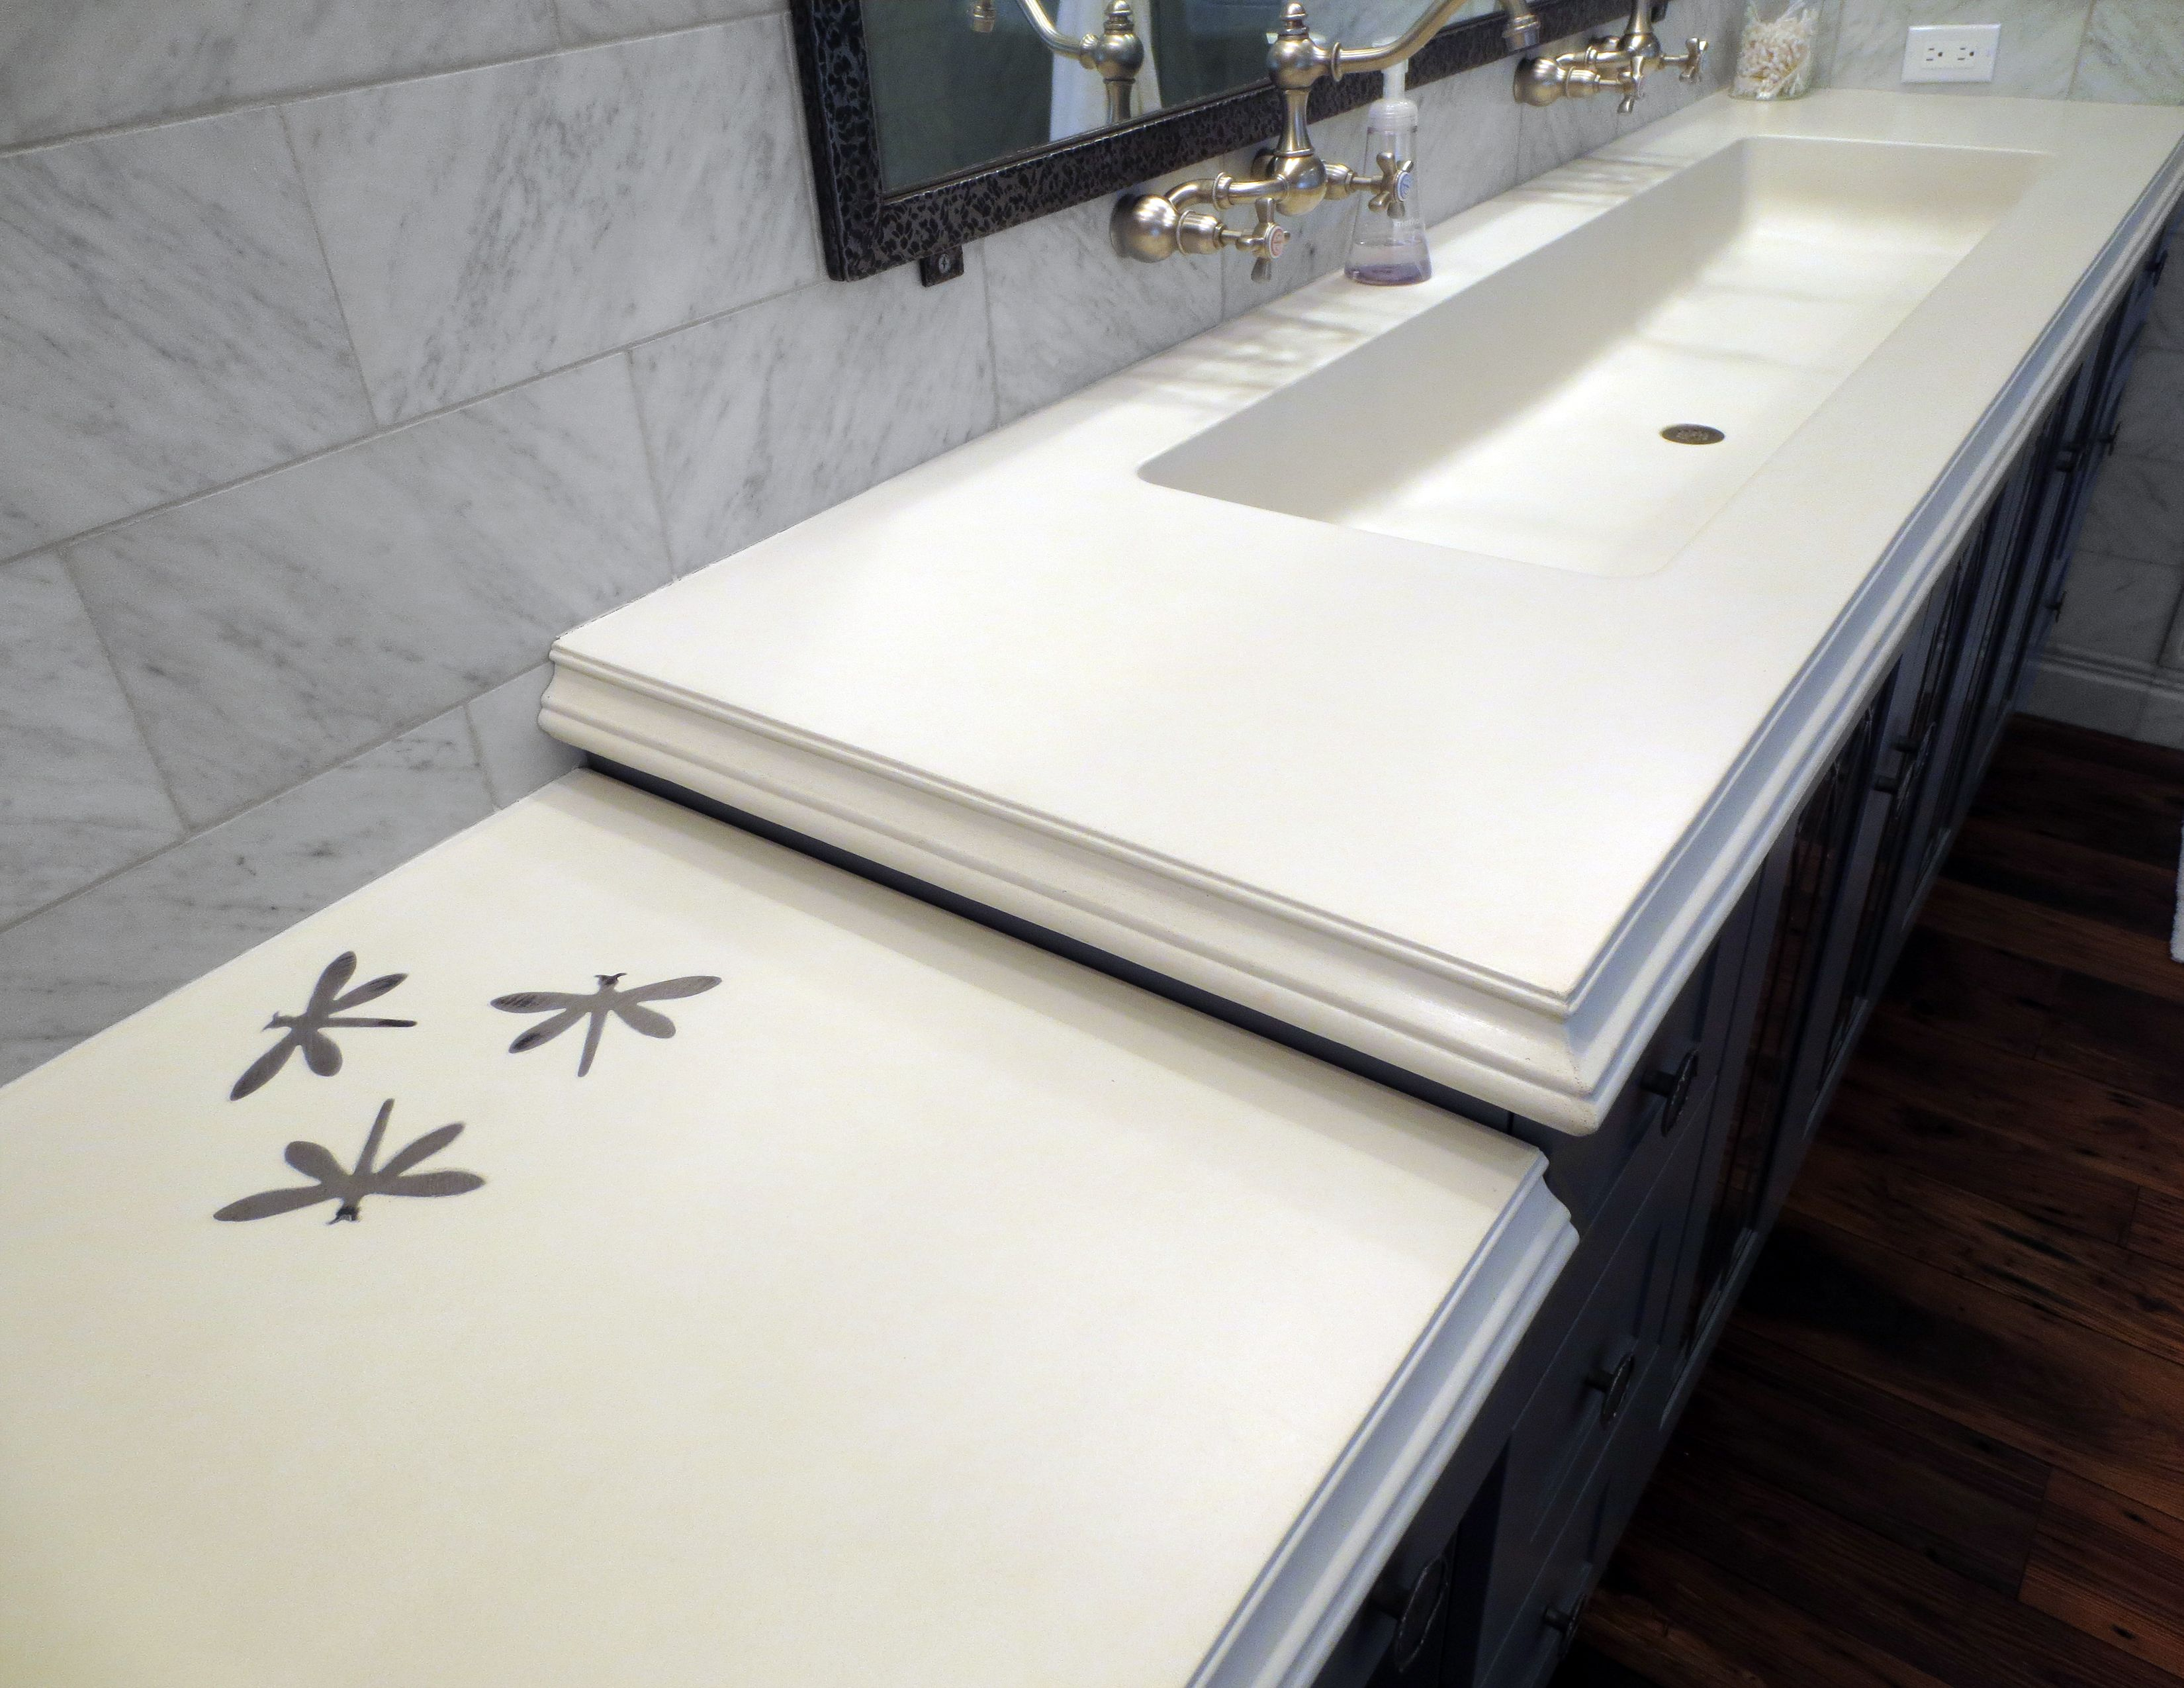 White Concrete Bathroom Sink With Steel Dragonfly Inlays Fabricated By Trueform Concrete This Concrete Bathroom Small Bathroom Vanities Bathroom Sink Vanity